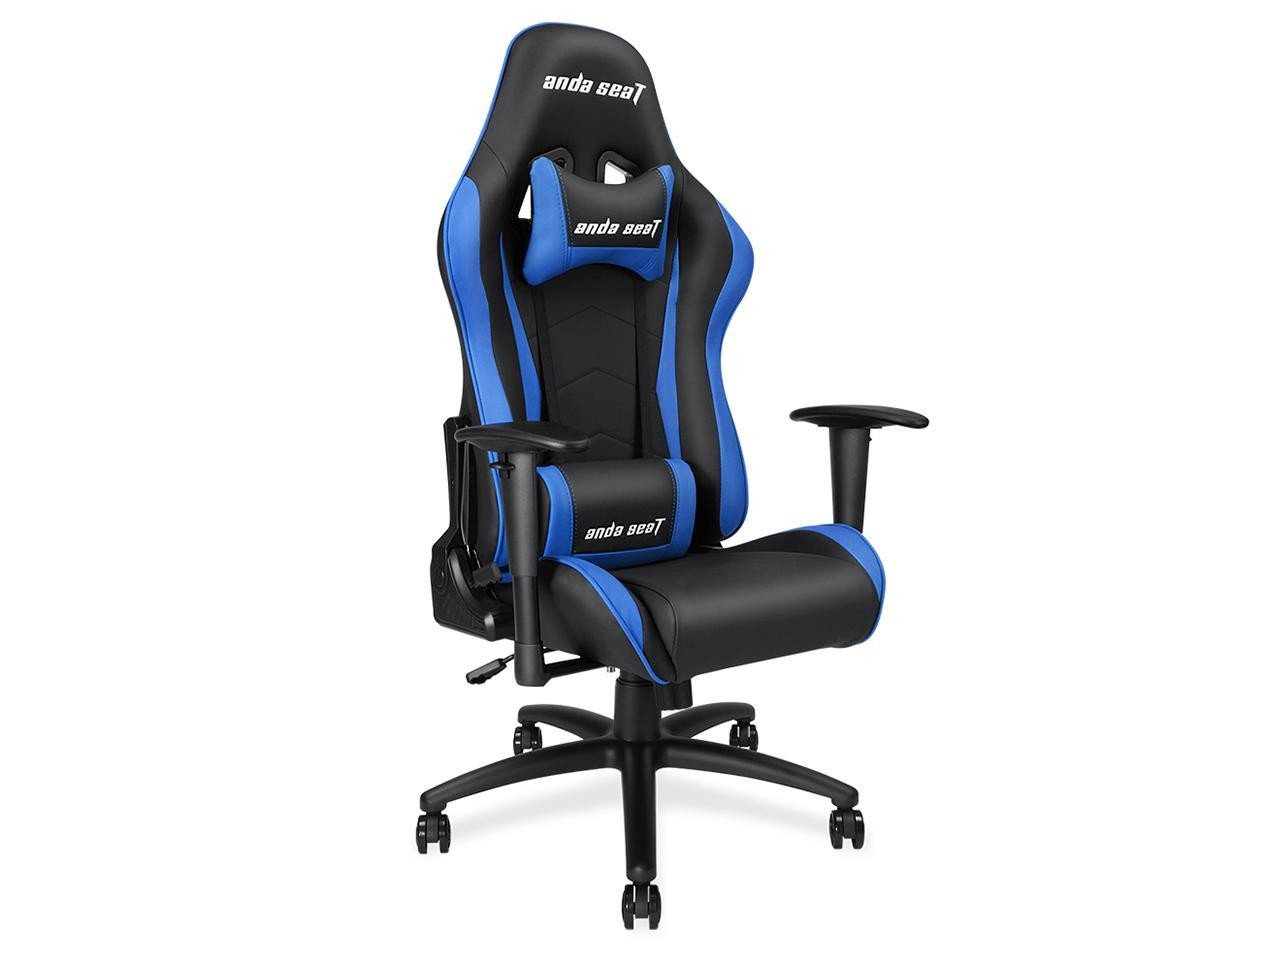 ANDA SEAT AXE GAMING CHAIR BLACK/BLUE